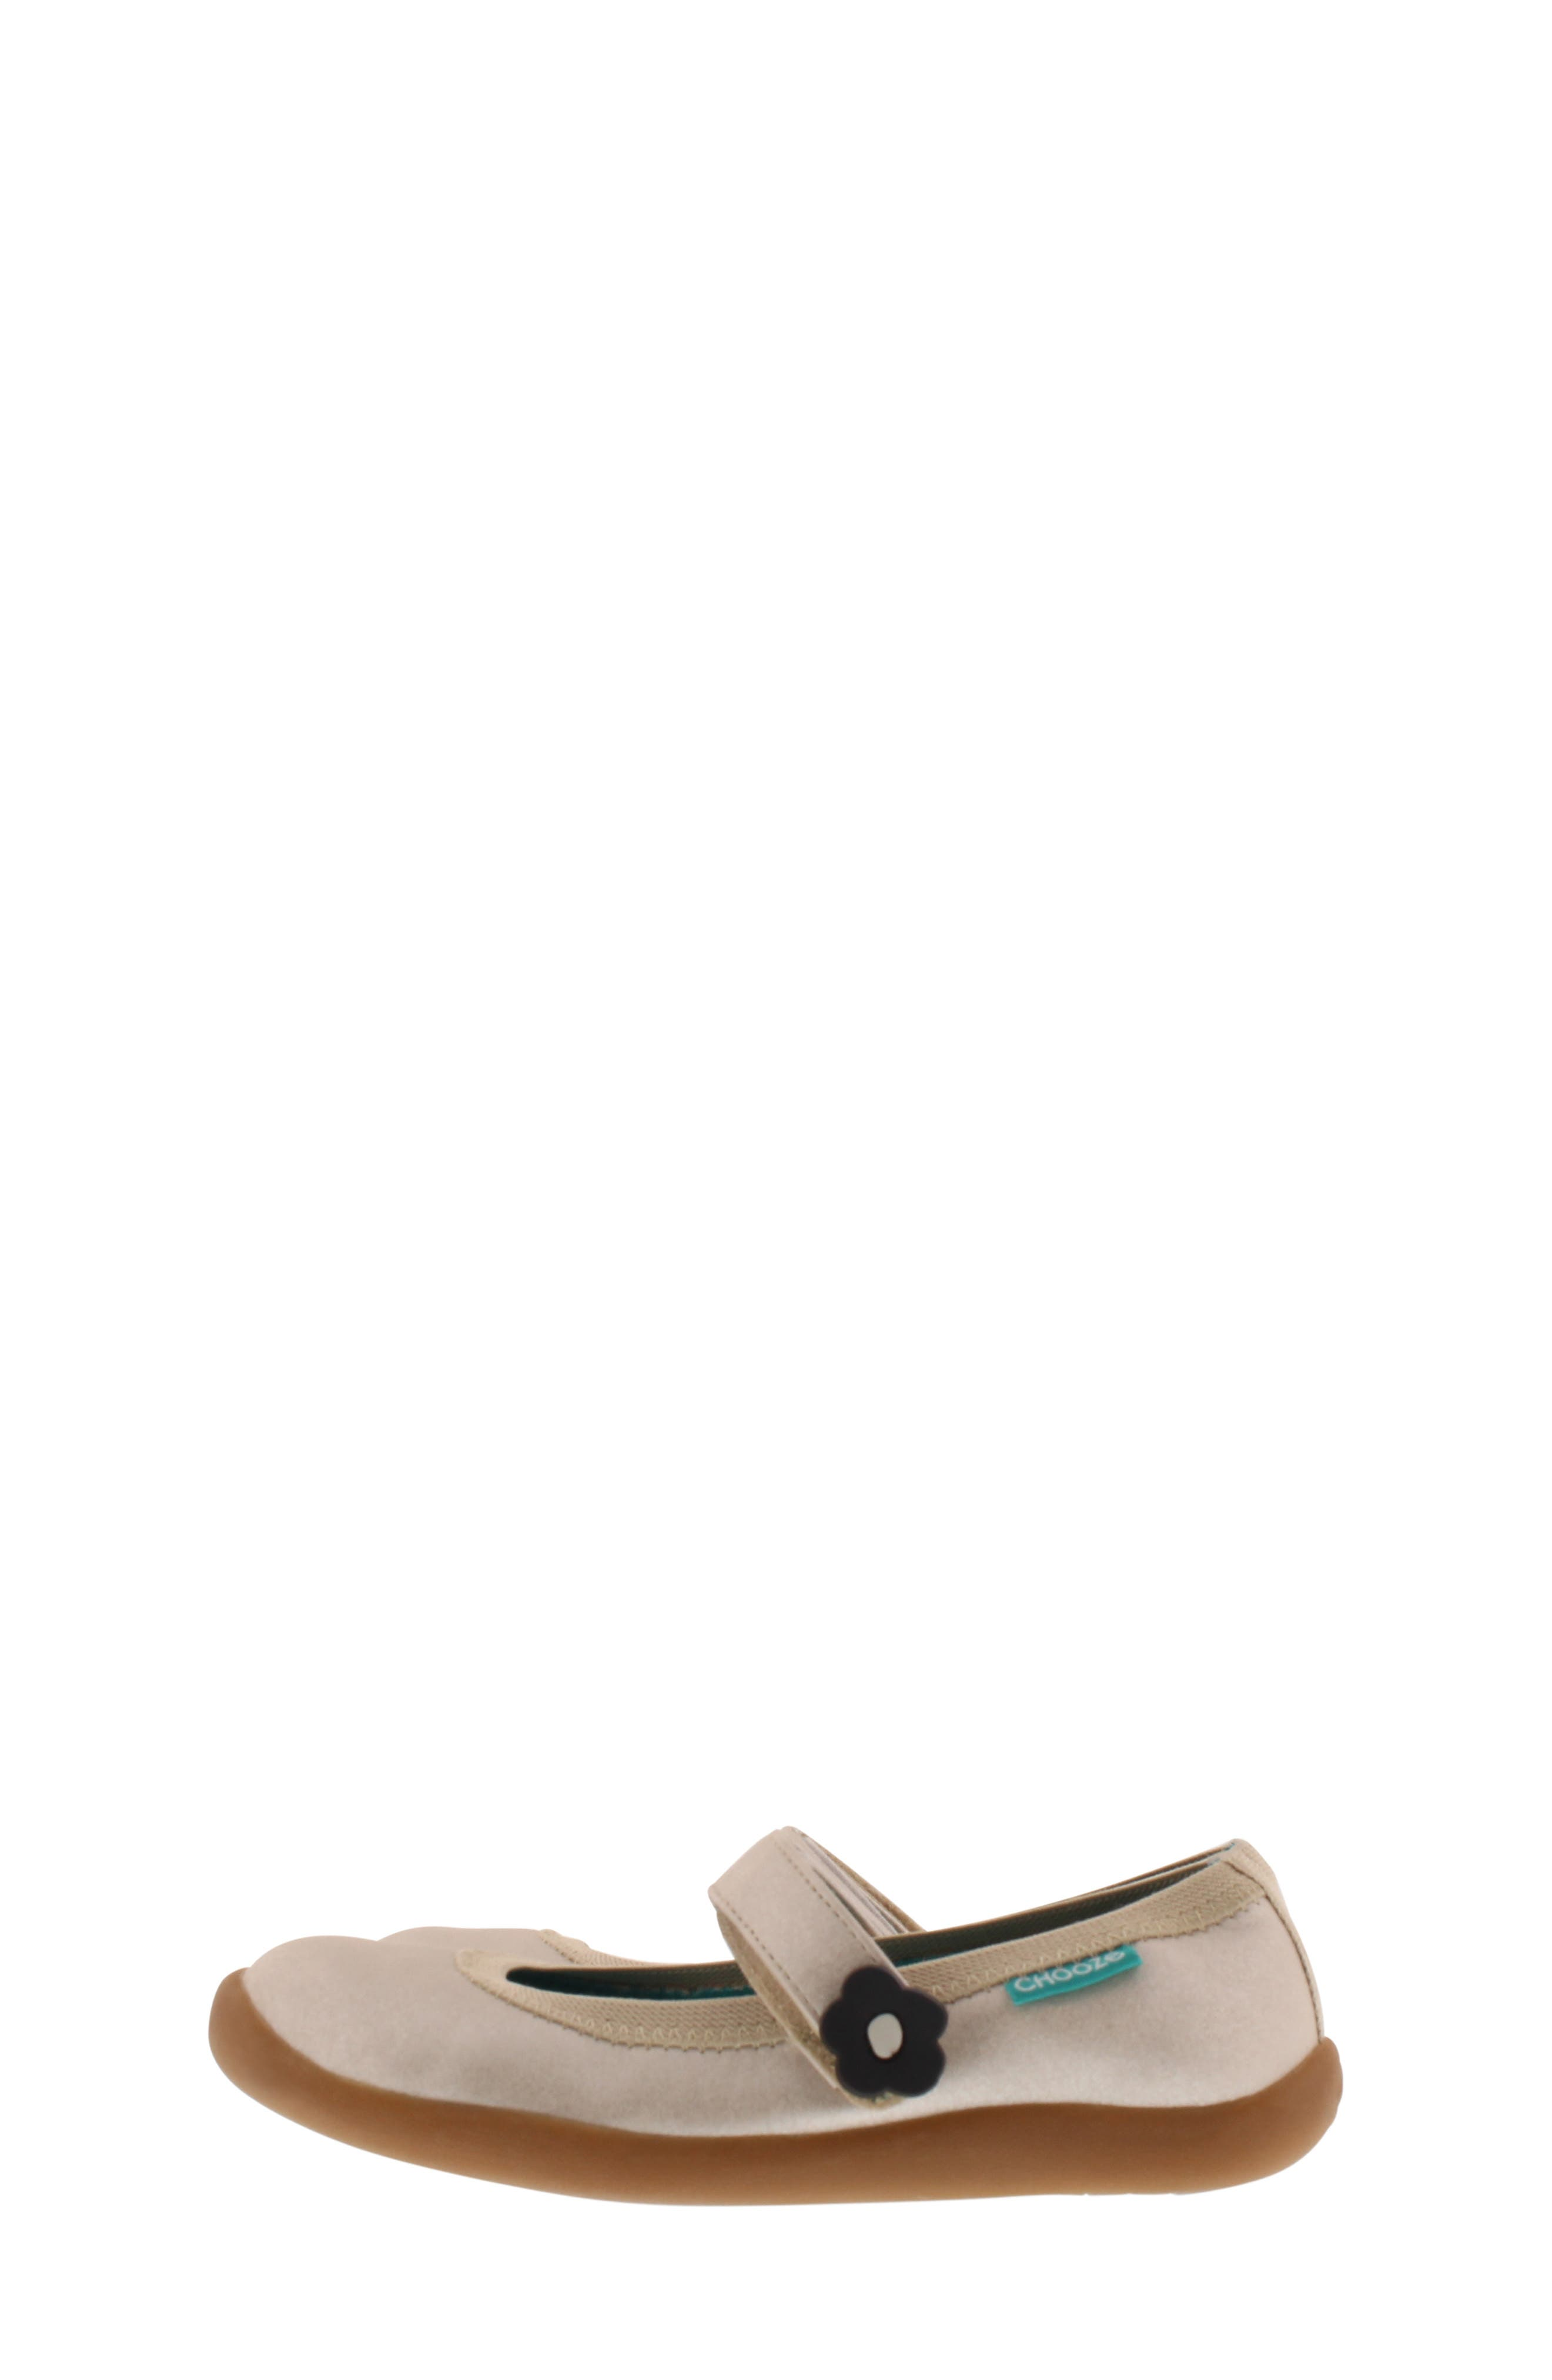 15903d6c4f3 Girls' Flats Shoes | Nordstrom